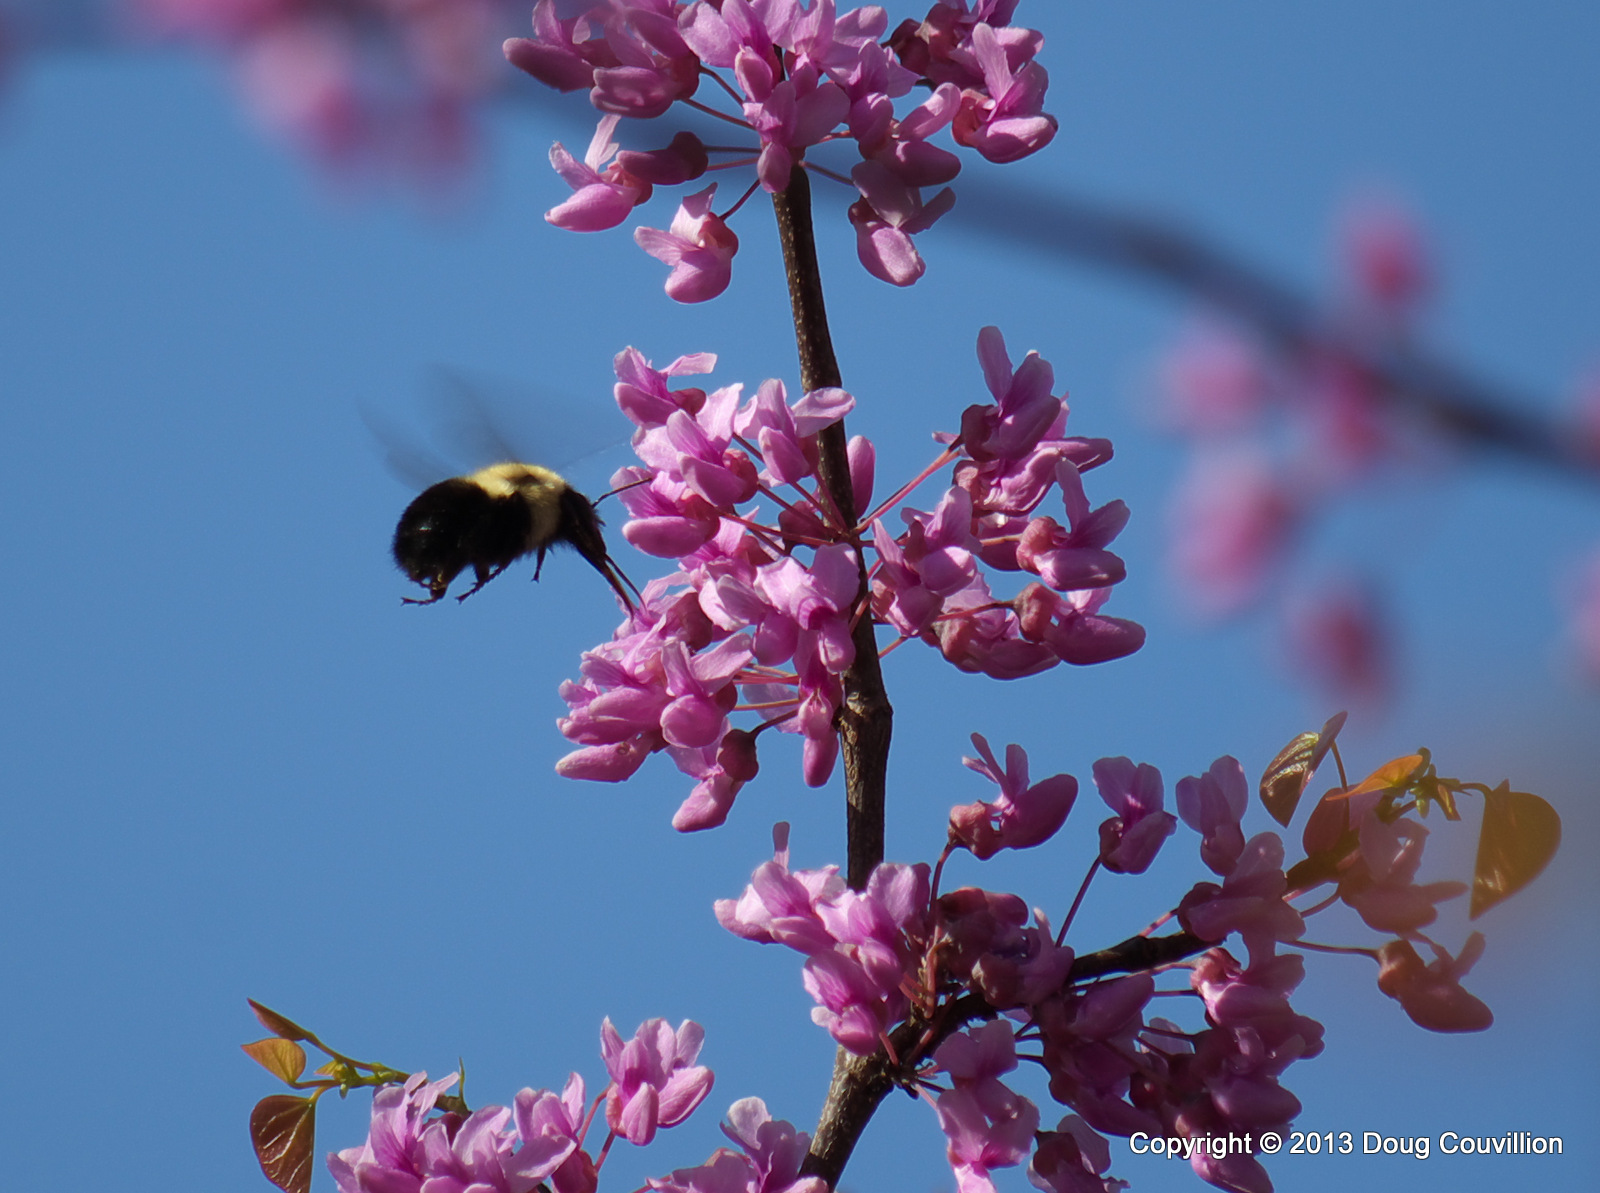 photograph of a bumble bee pollenating a redbud tree